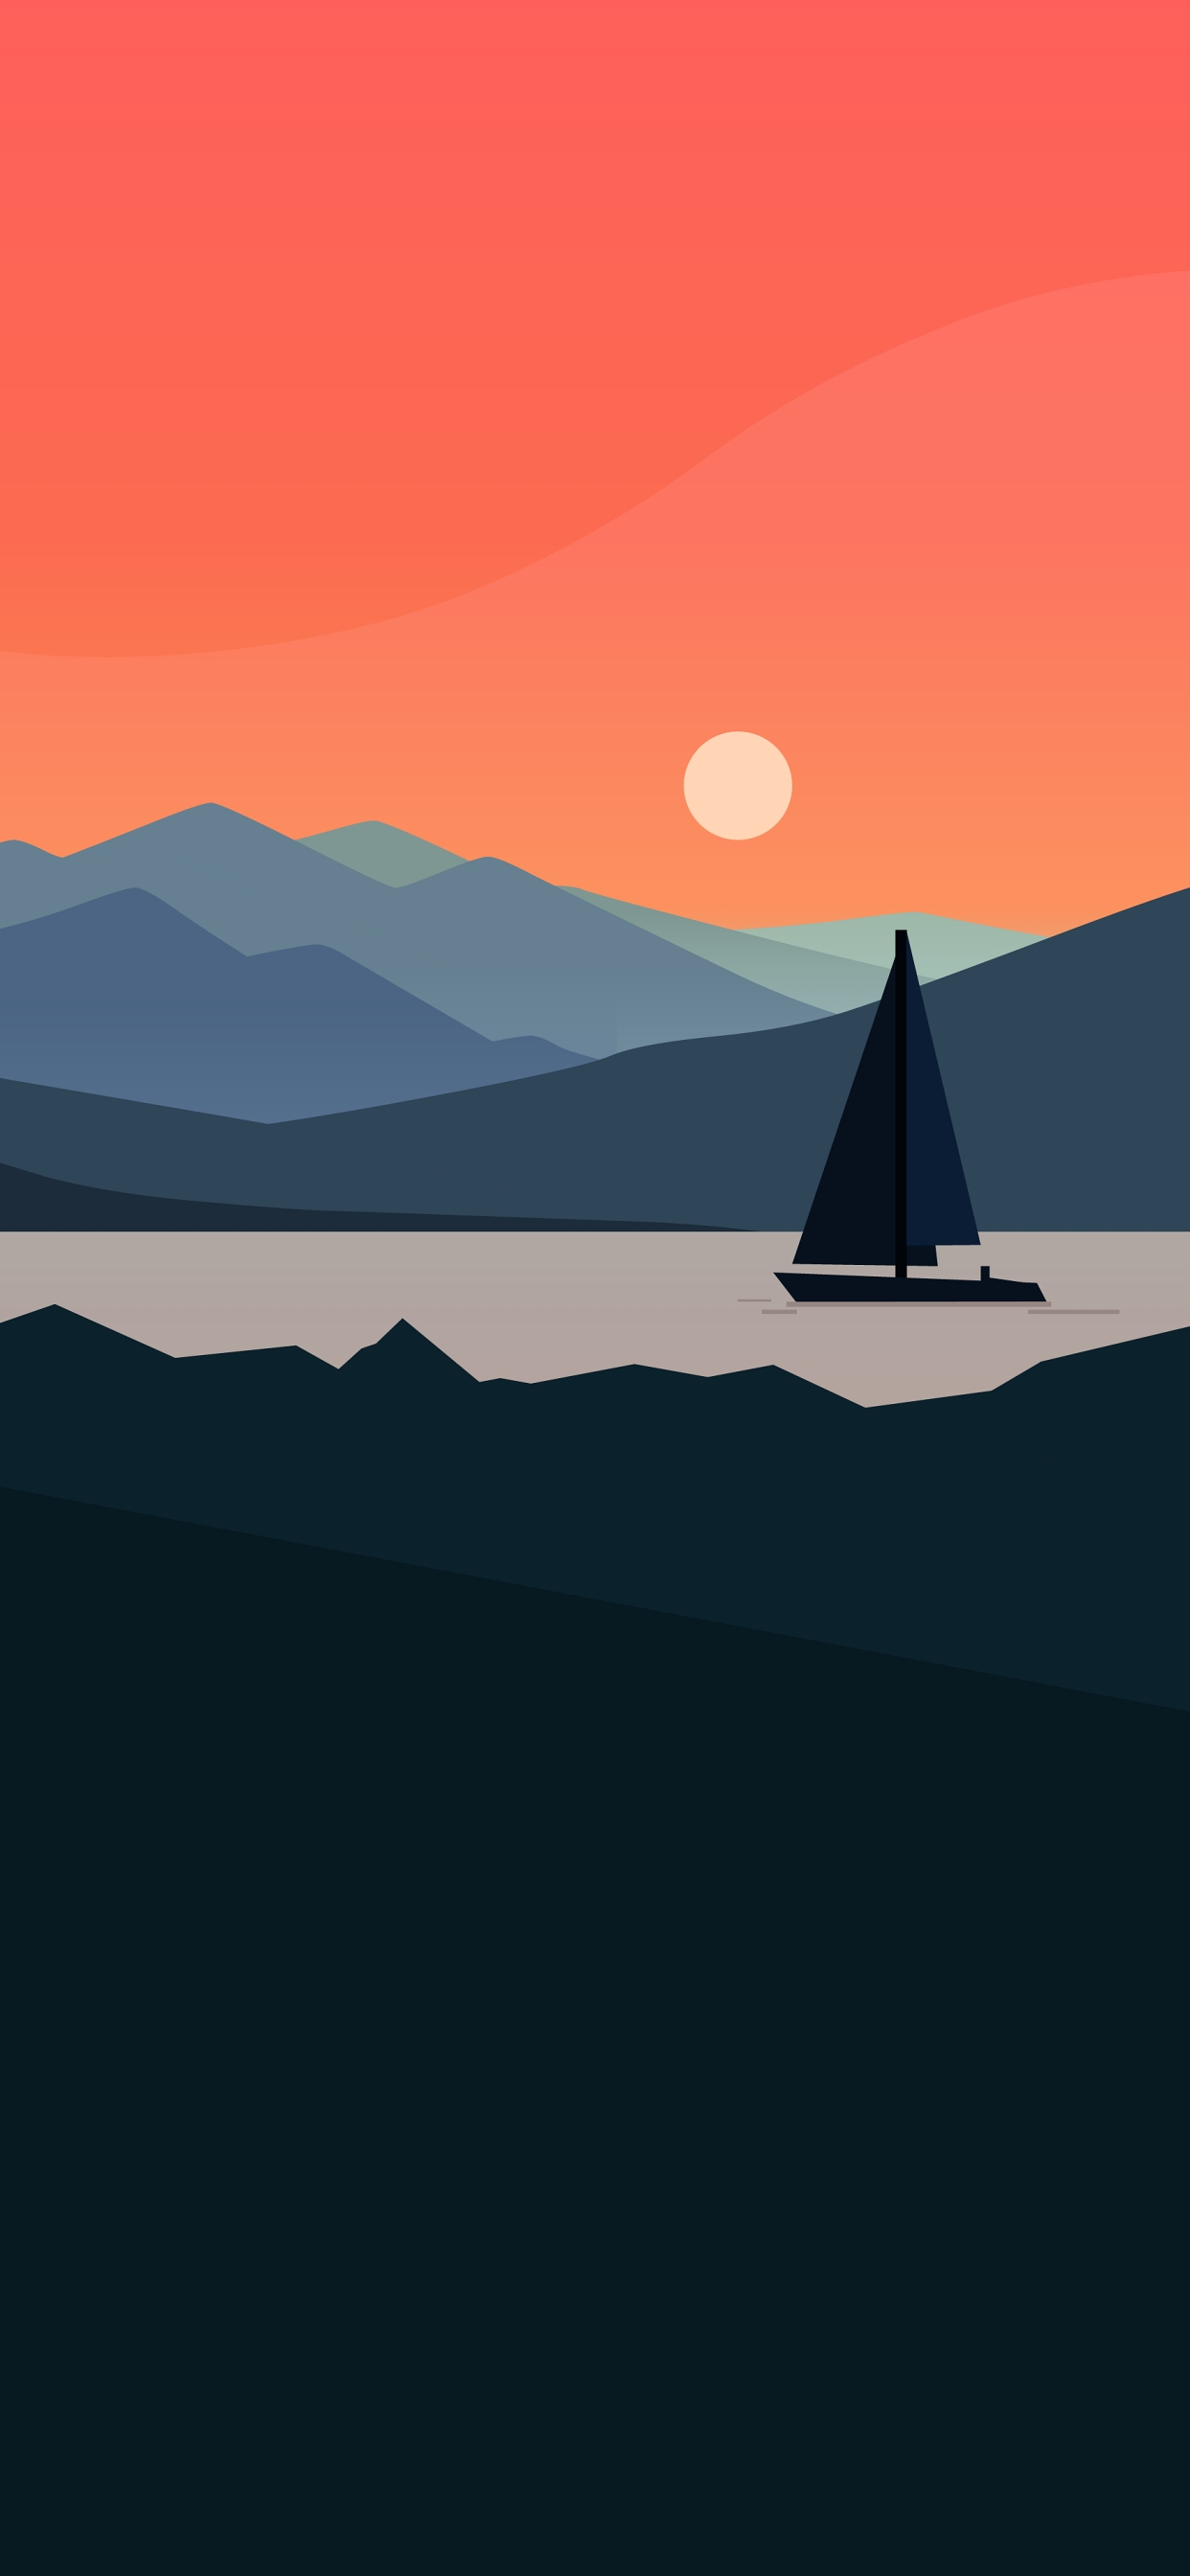 8 cool minimalist iphone wallpapers HD   WallpaperiZe ...